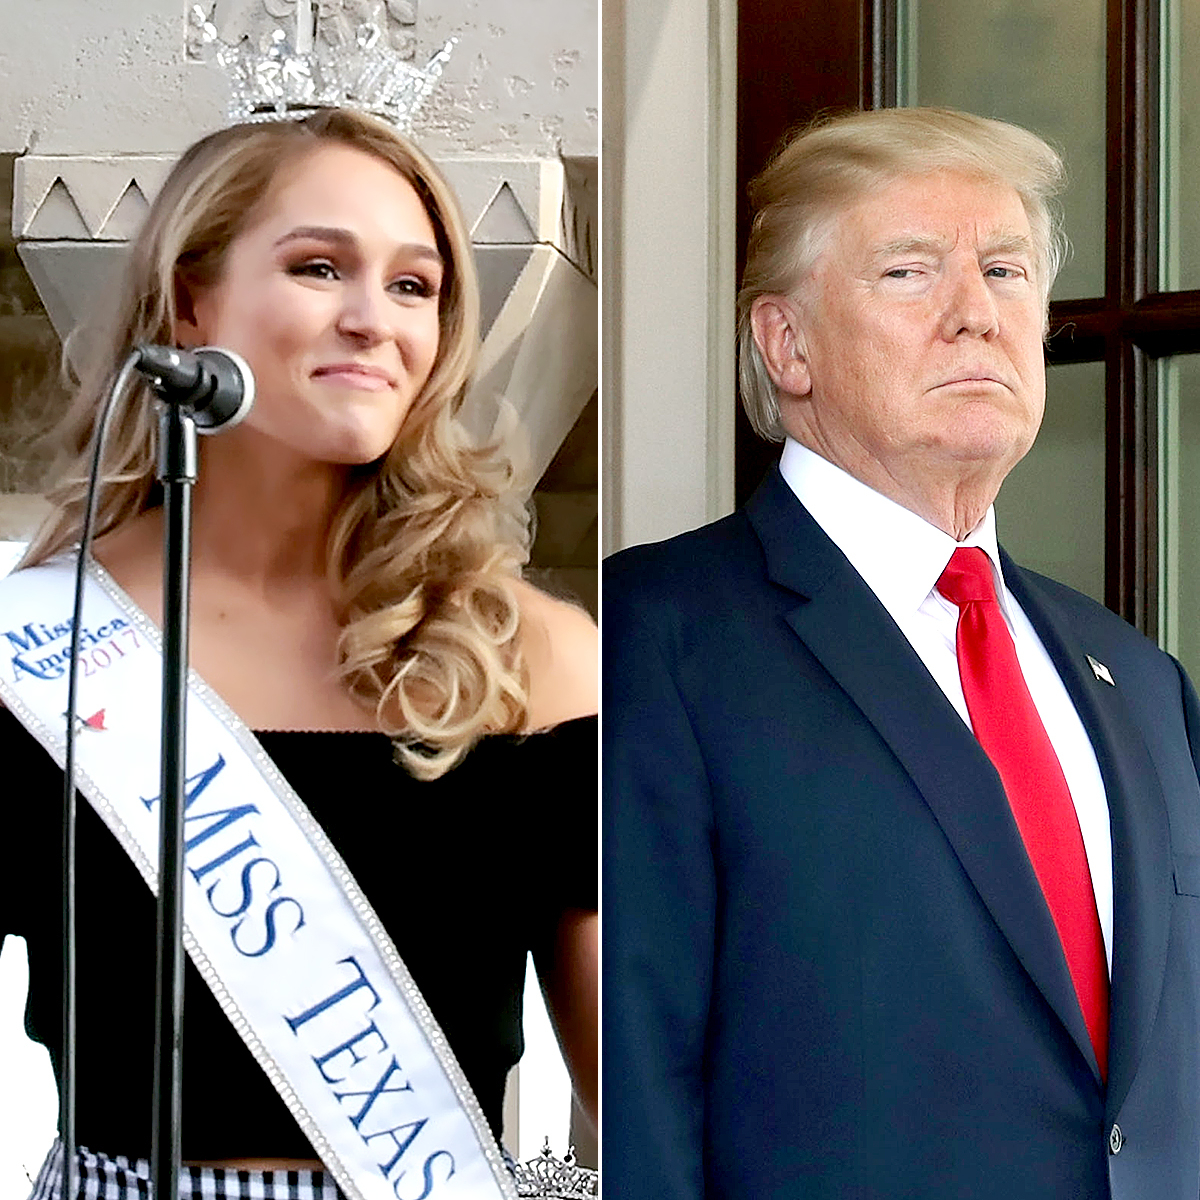 Miss Texas Margana Wood and Donald Trump